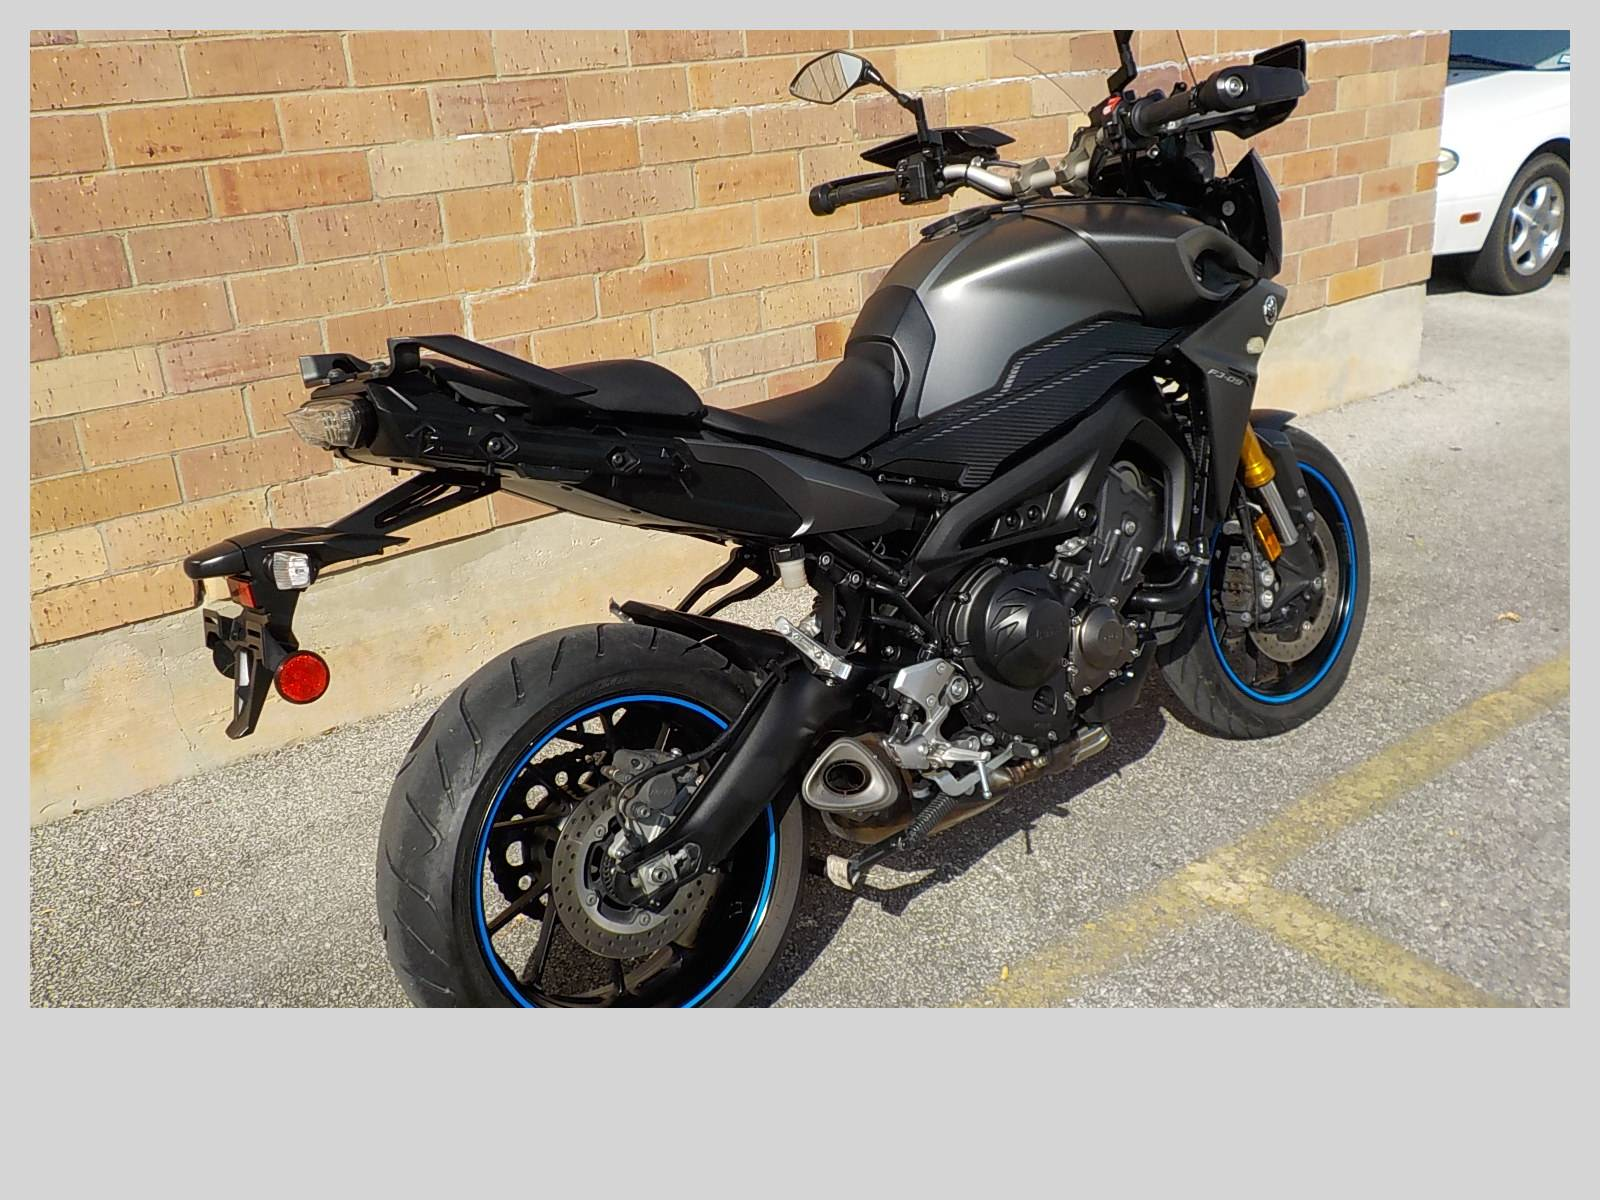 2015 Yamaha FJ-09 in San Antonio, Texas - Photo 5